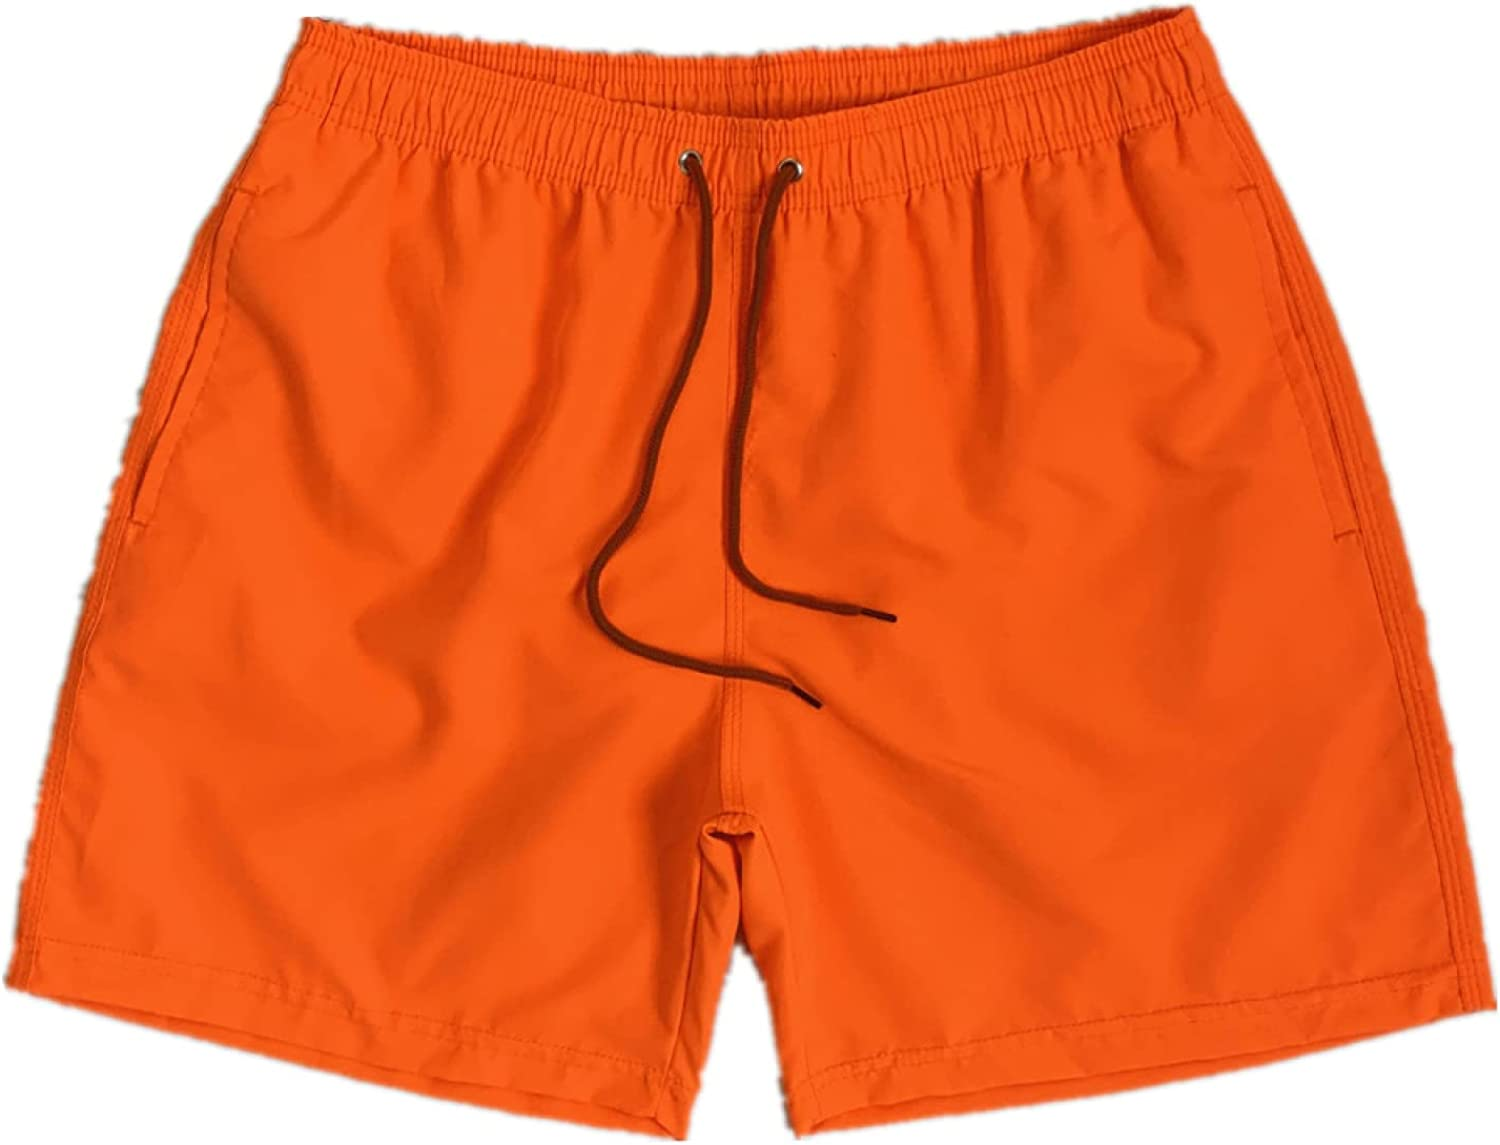 Men's Solid Color Elastic Waist Shorts Loose Casual Simple Fitness Running